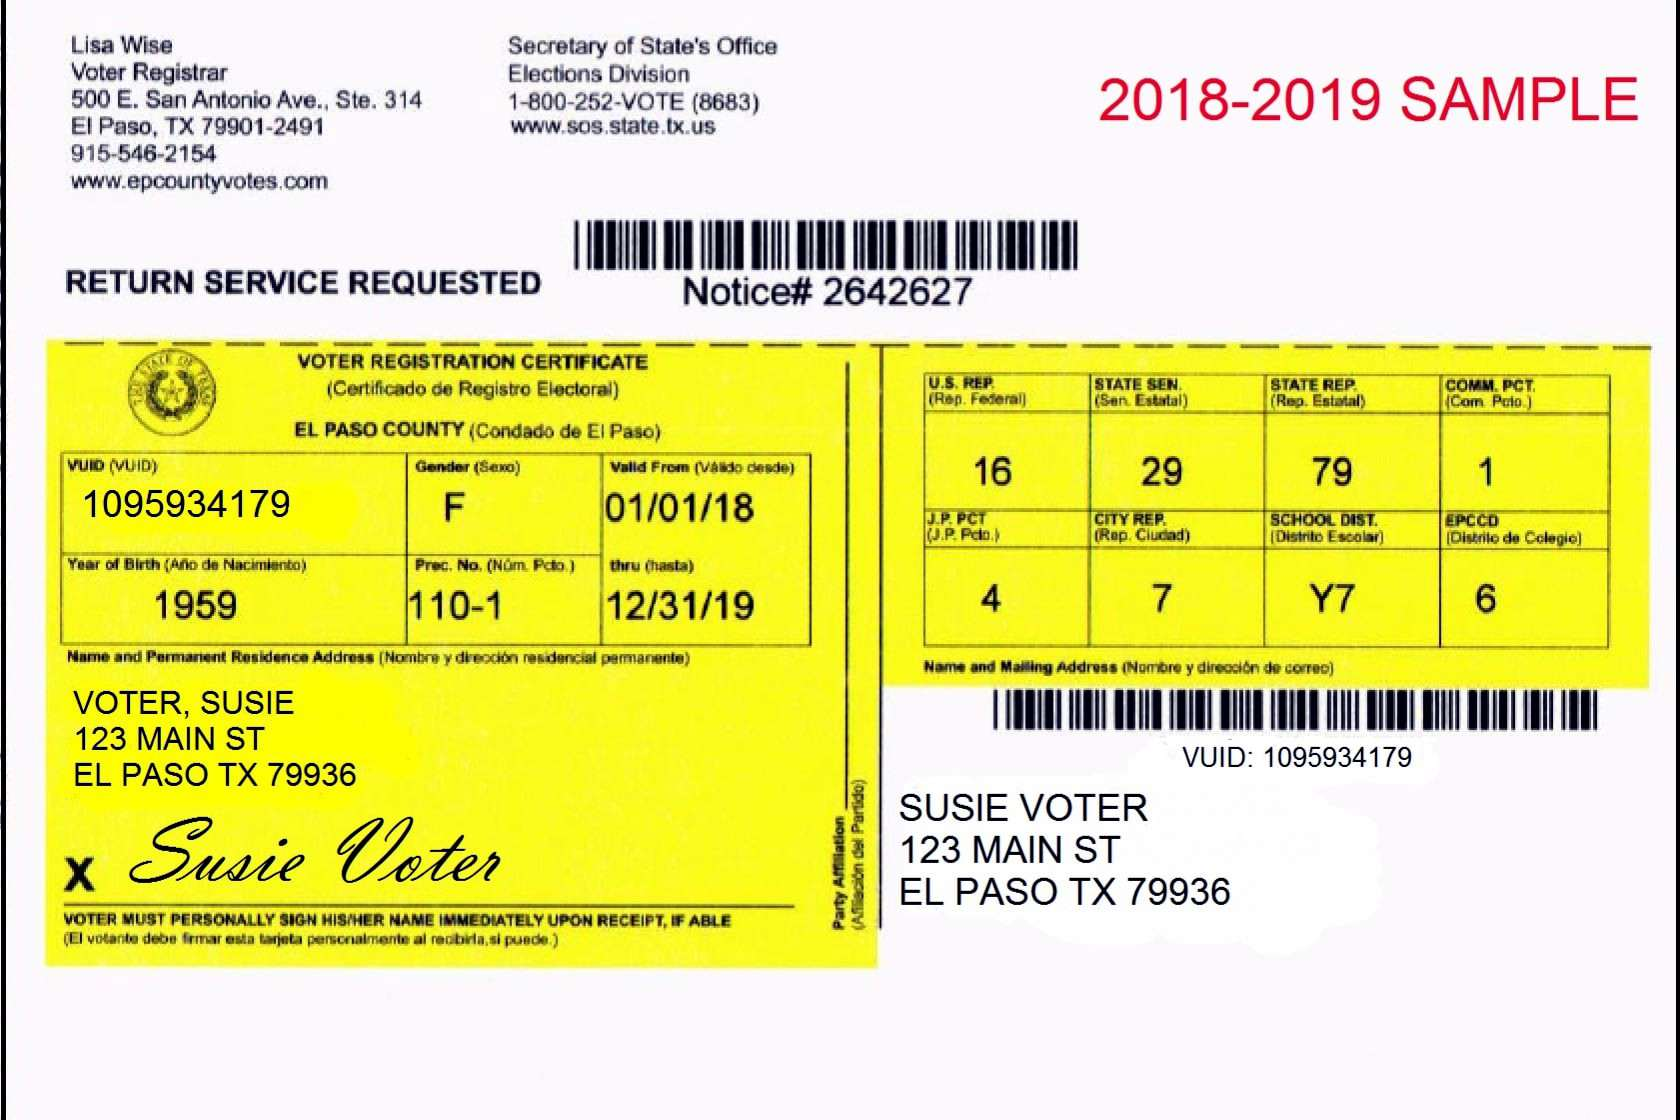 A sample 2018 voter registration card issued by the local government in El Paso, TX